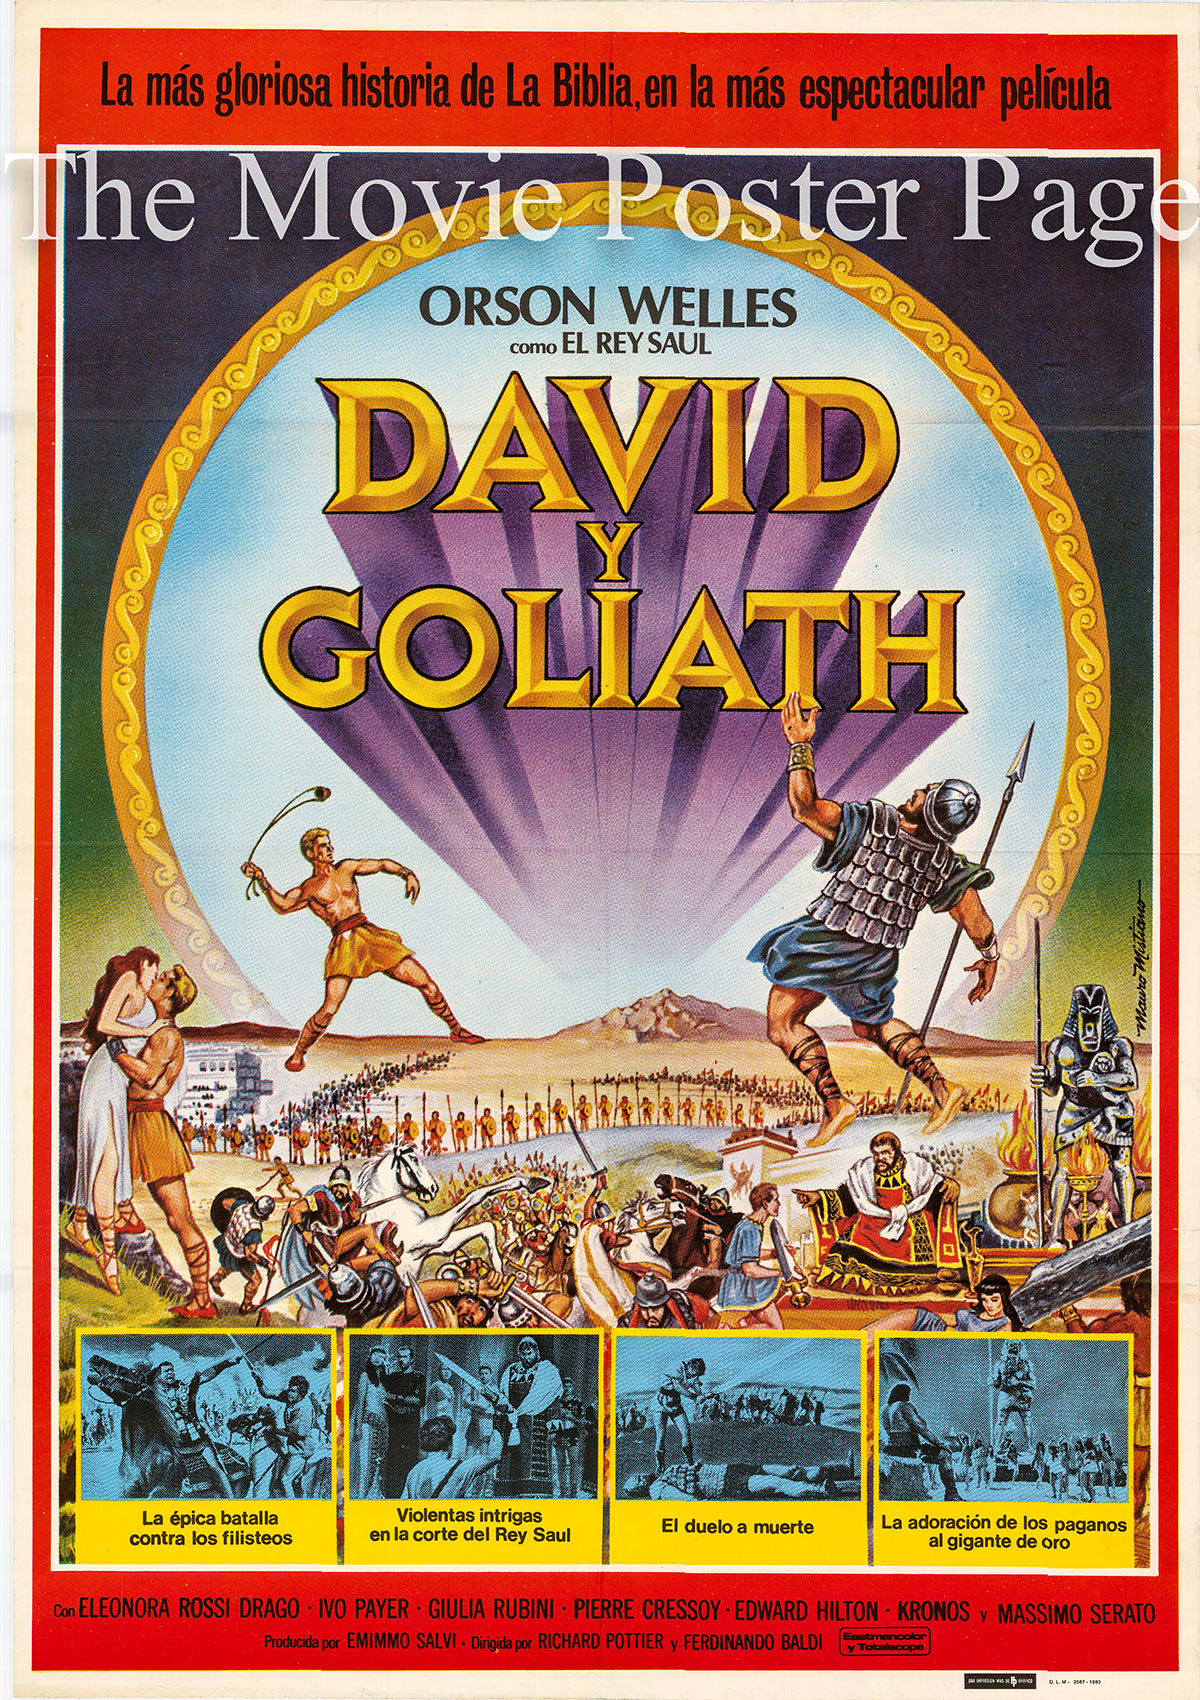 Pictured is a Spanish promotional poster for a 1980 rerelease of the 1960 Ferdinando Baldi and Richard Pottier film David and Goliath starring Orson Welles as King Saul.